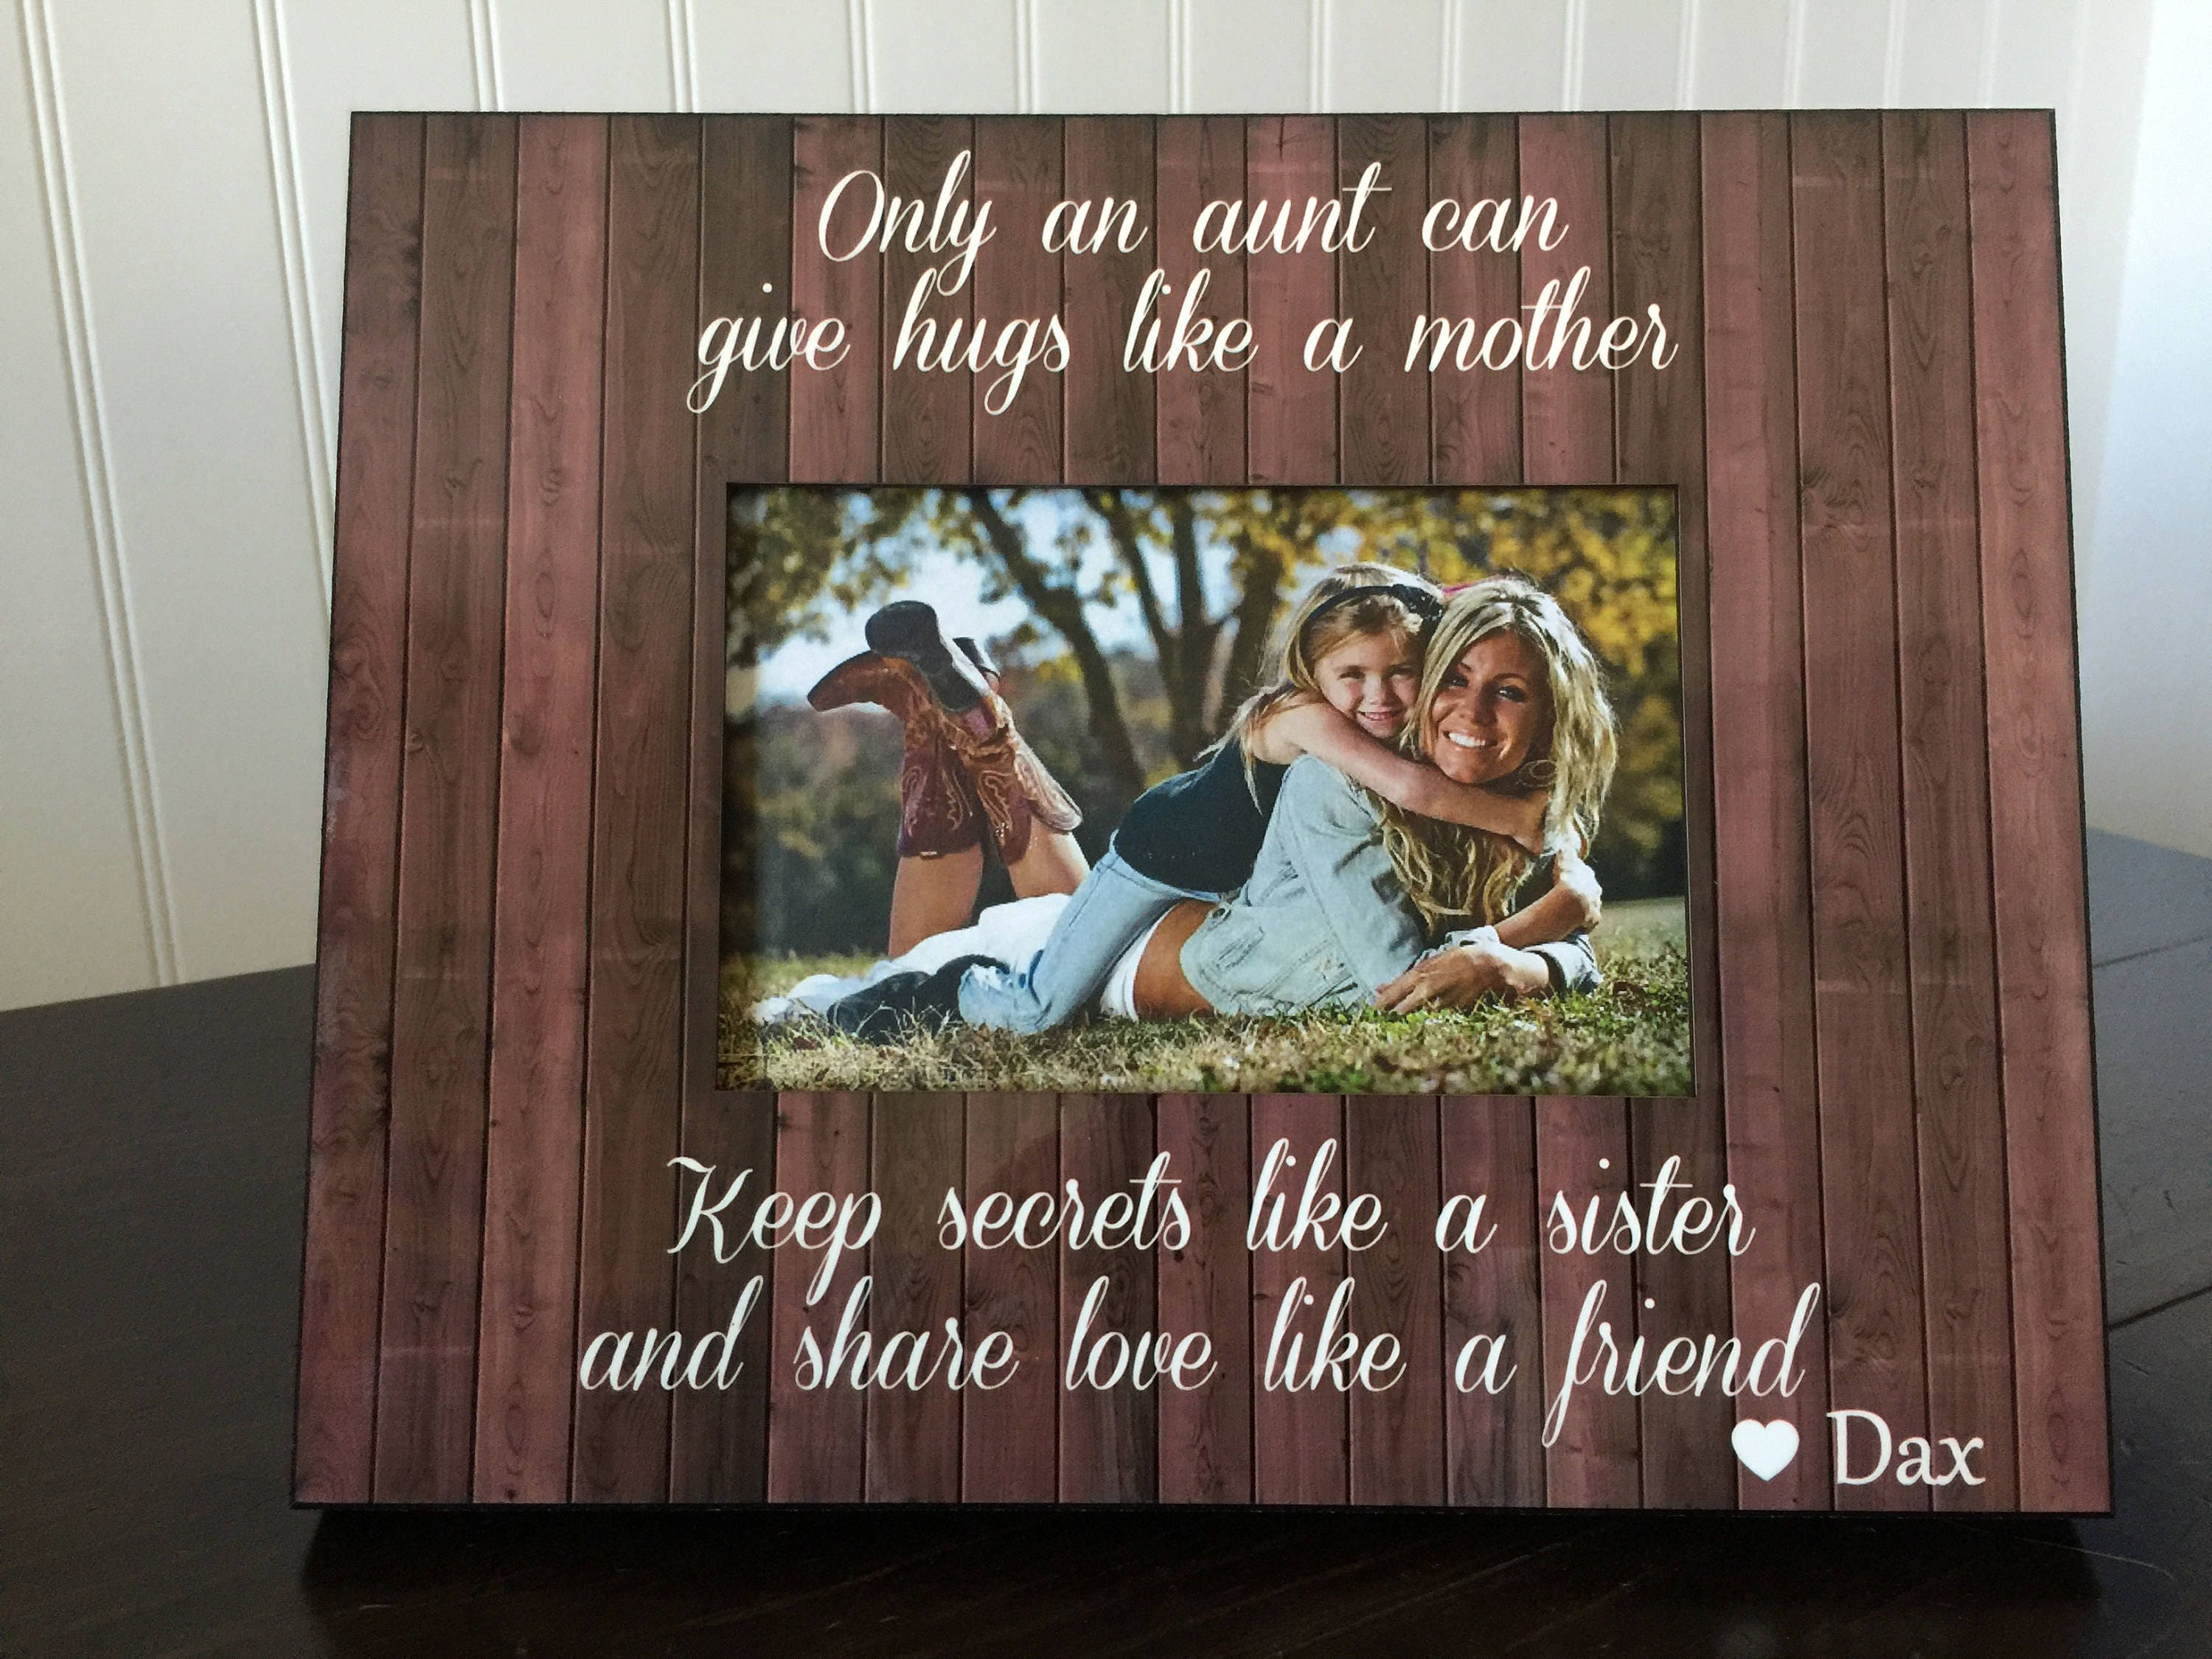 Aunt personalized picture frame // gift for aunt from niece or